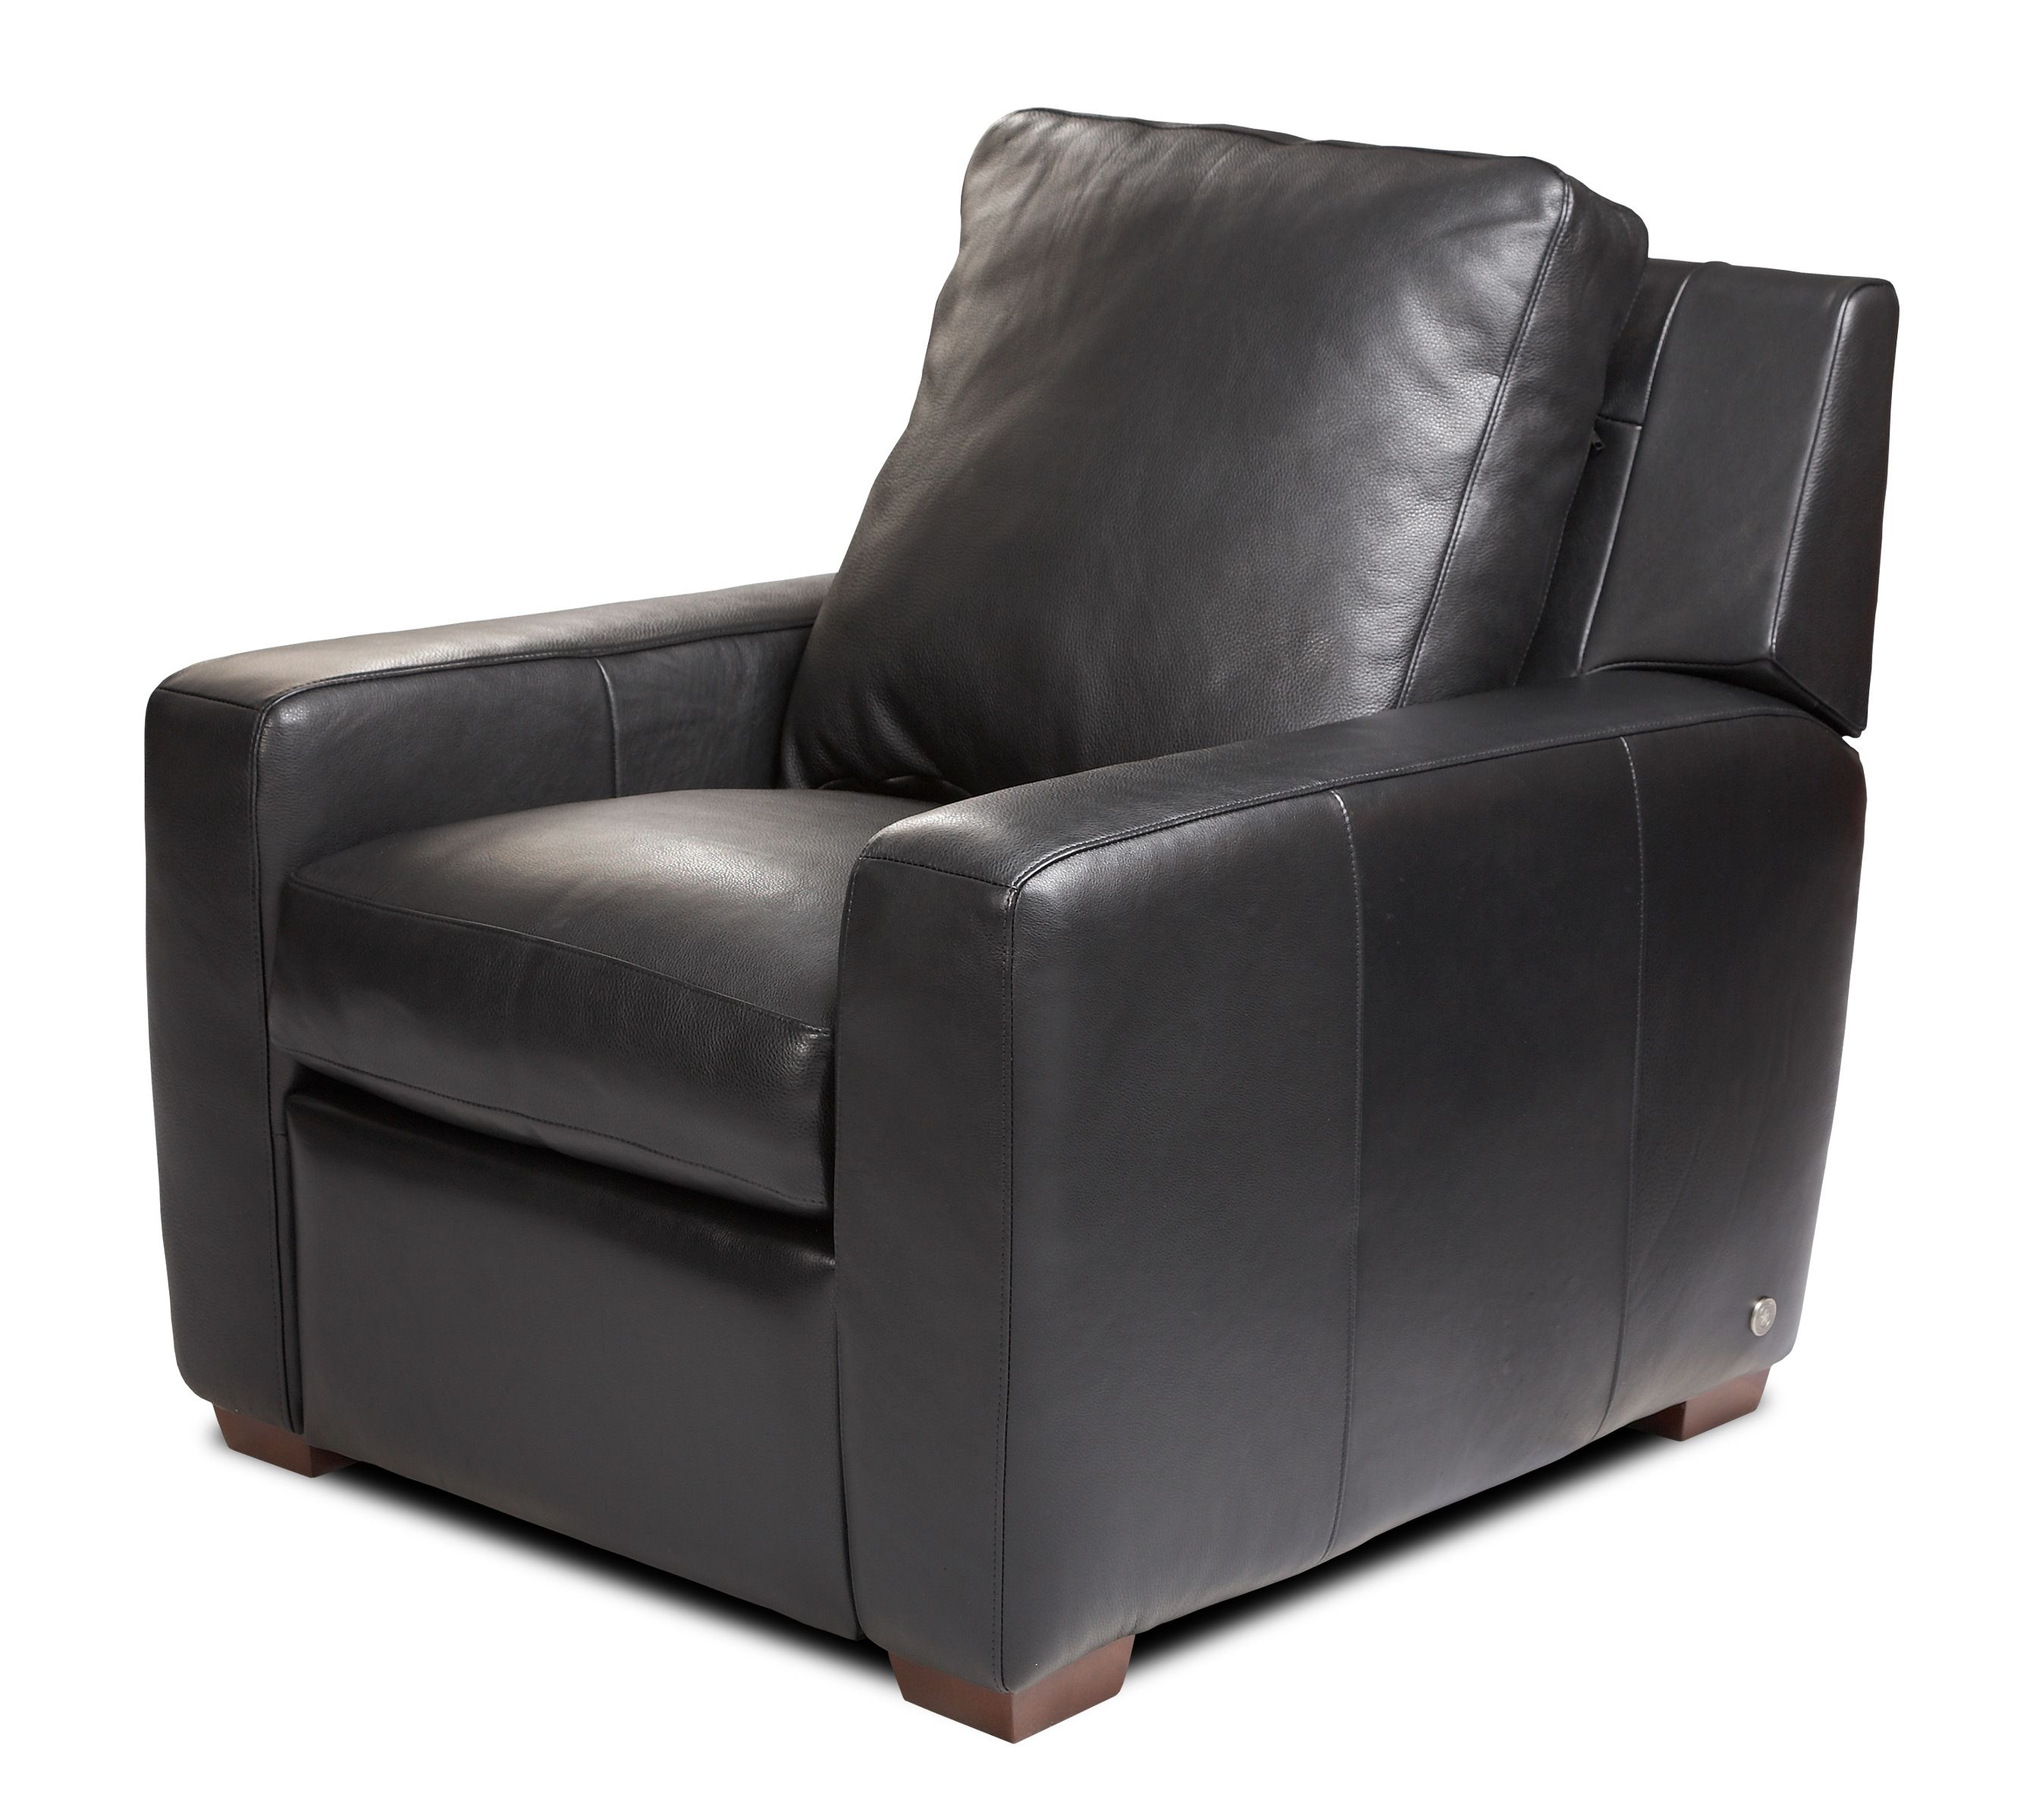 Custom Accent Chairs American Leather Ottoman bench